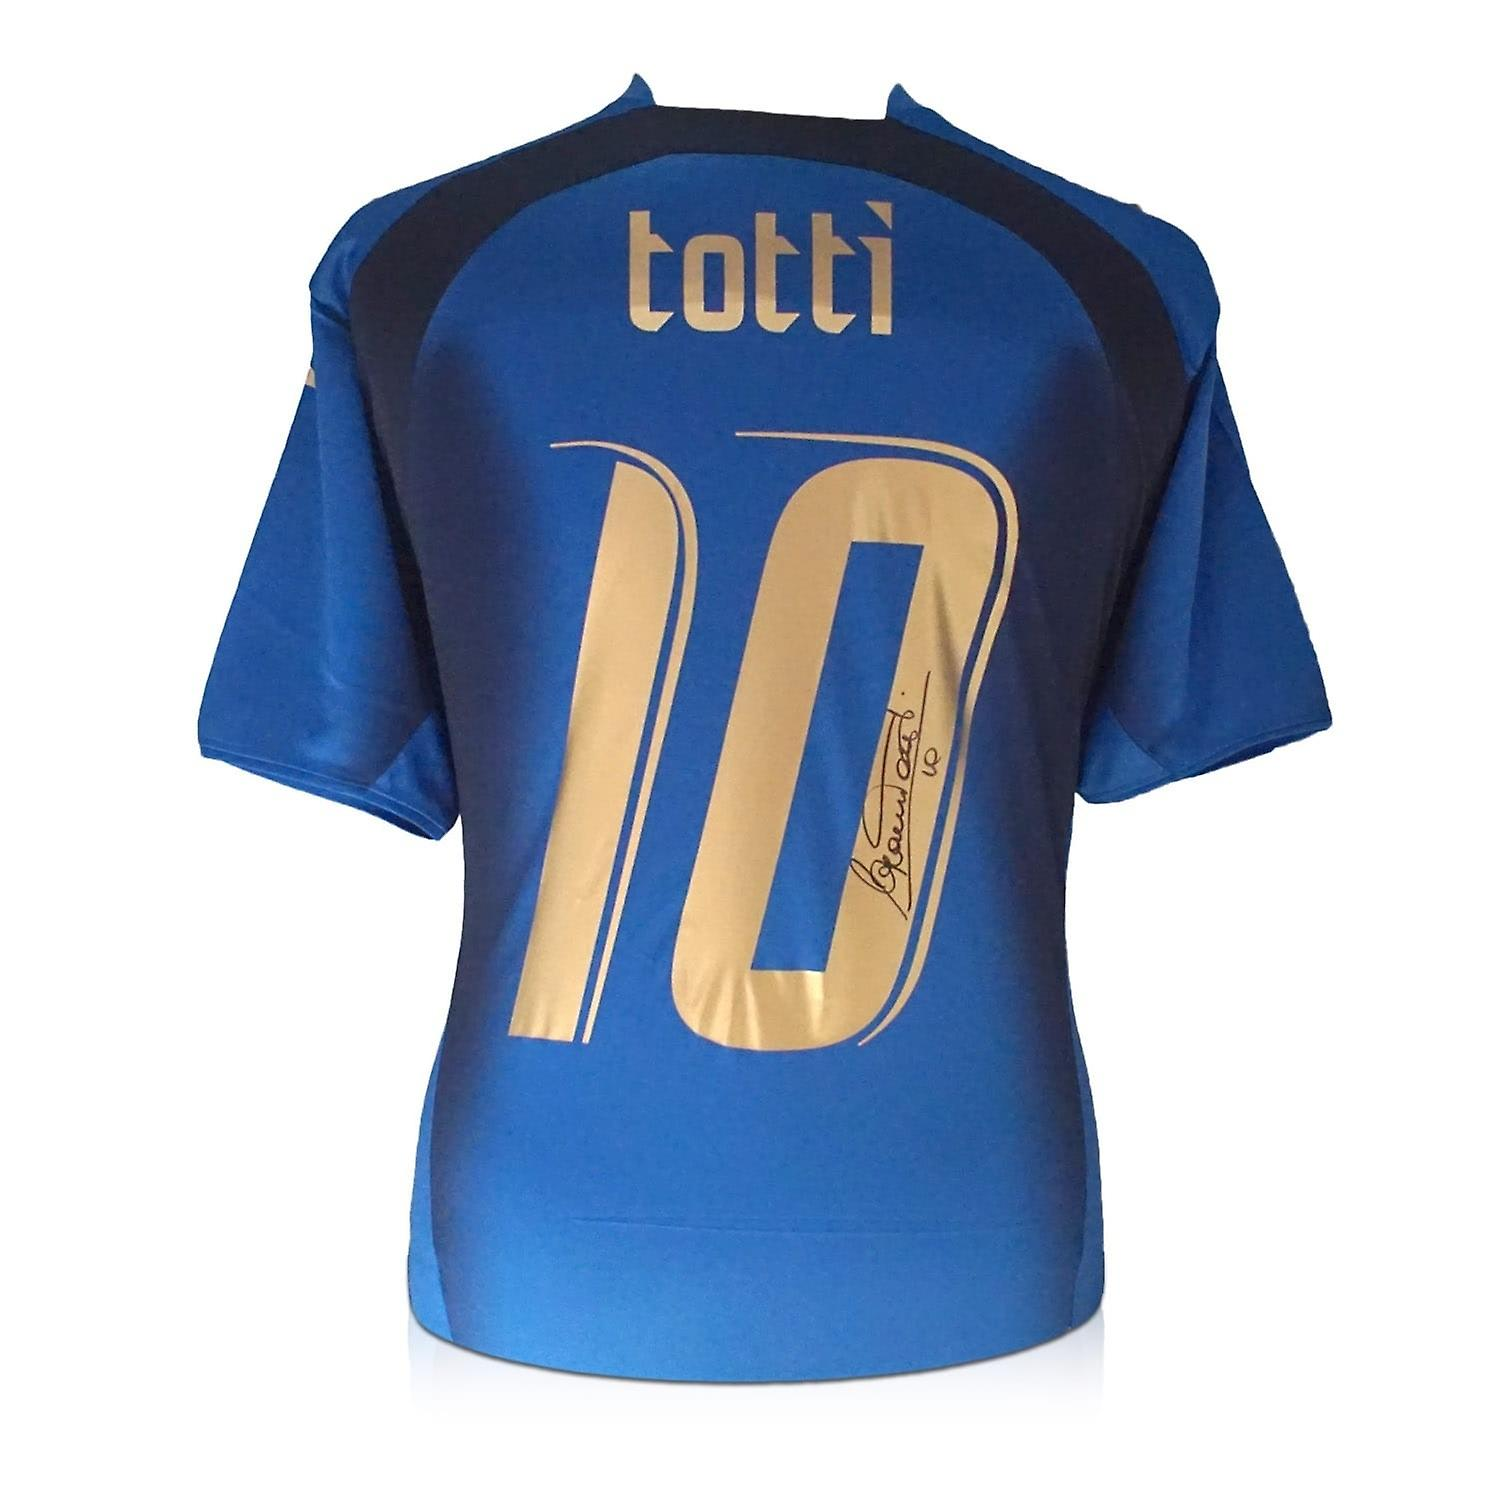 c3e629465 Francesco Totti Signed Italy 2006 World Cup Winners Football Shirt ...